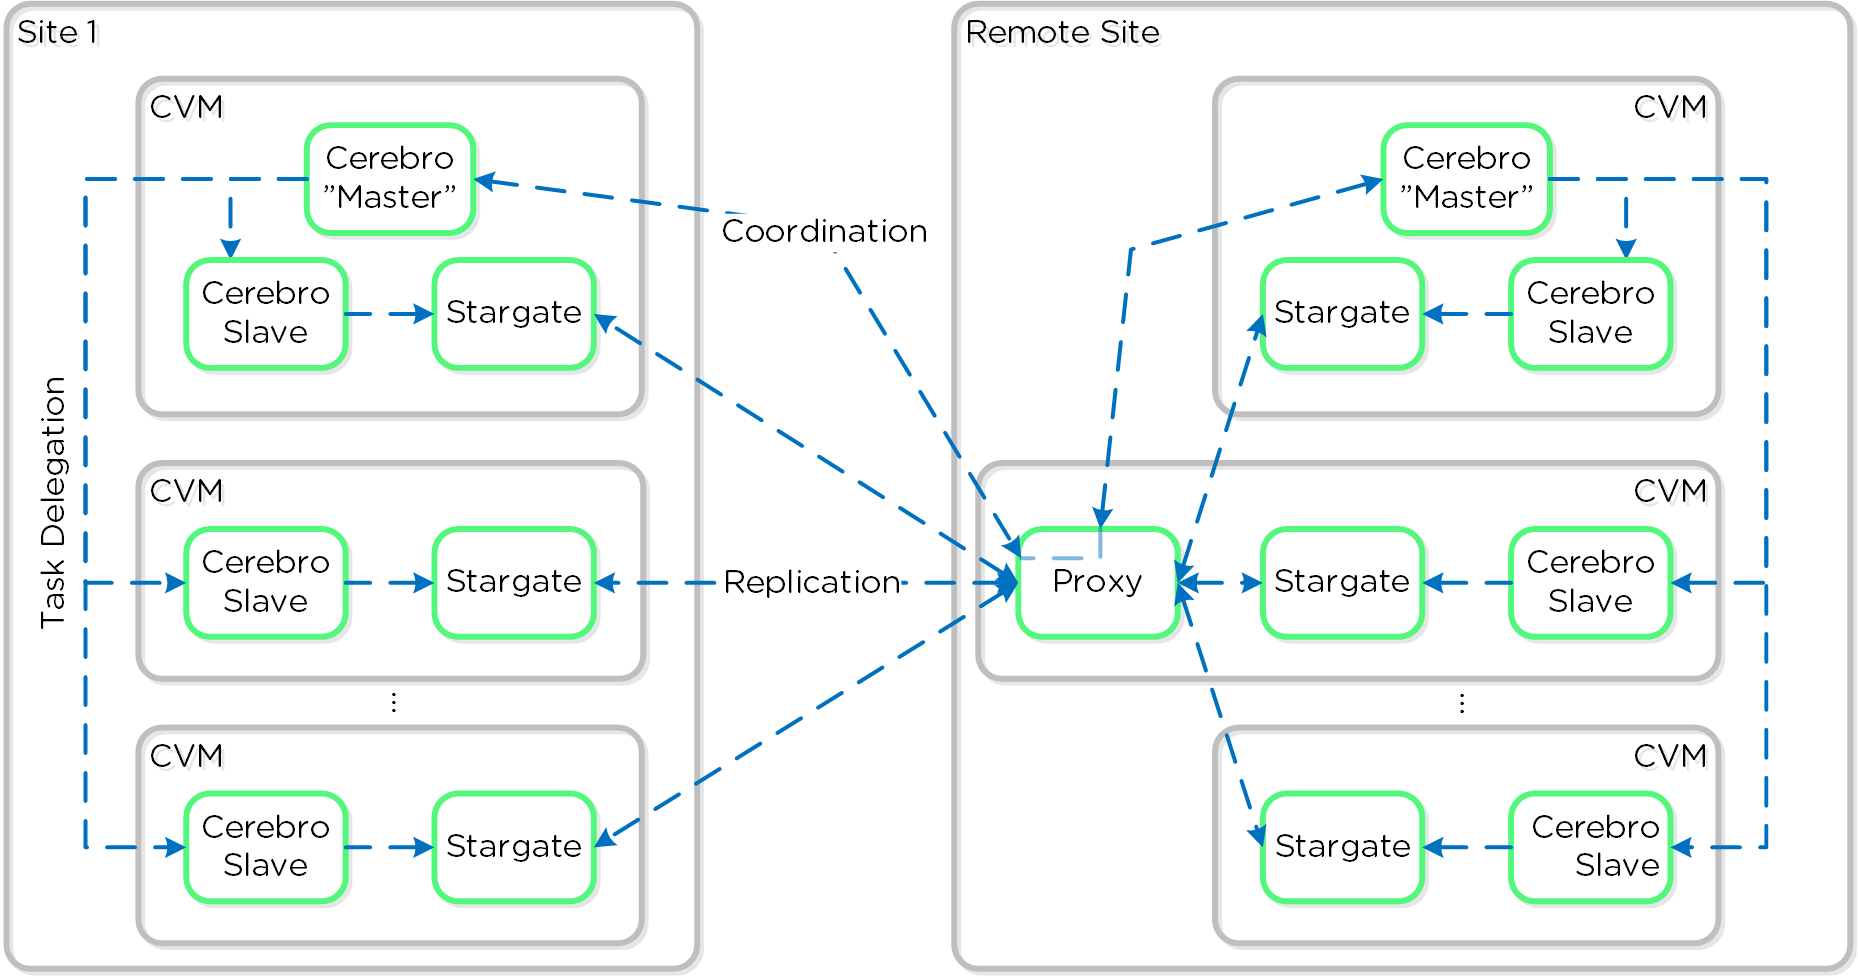 Replication Architecture - Proxy